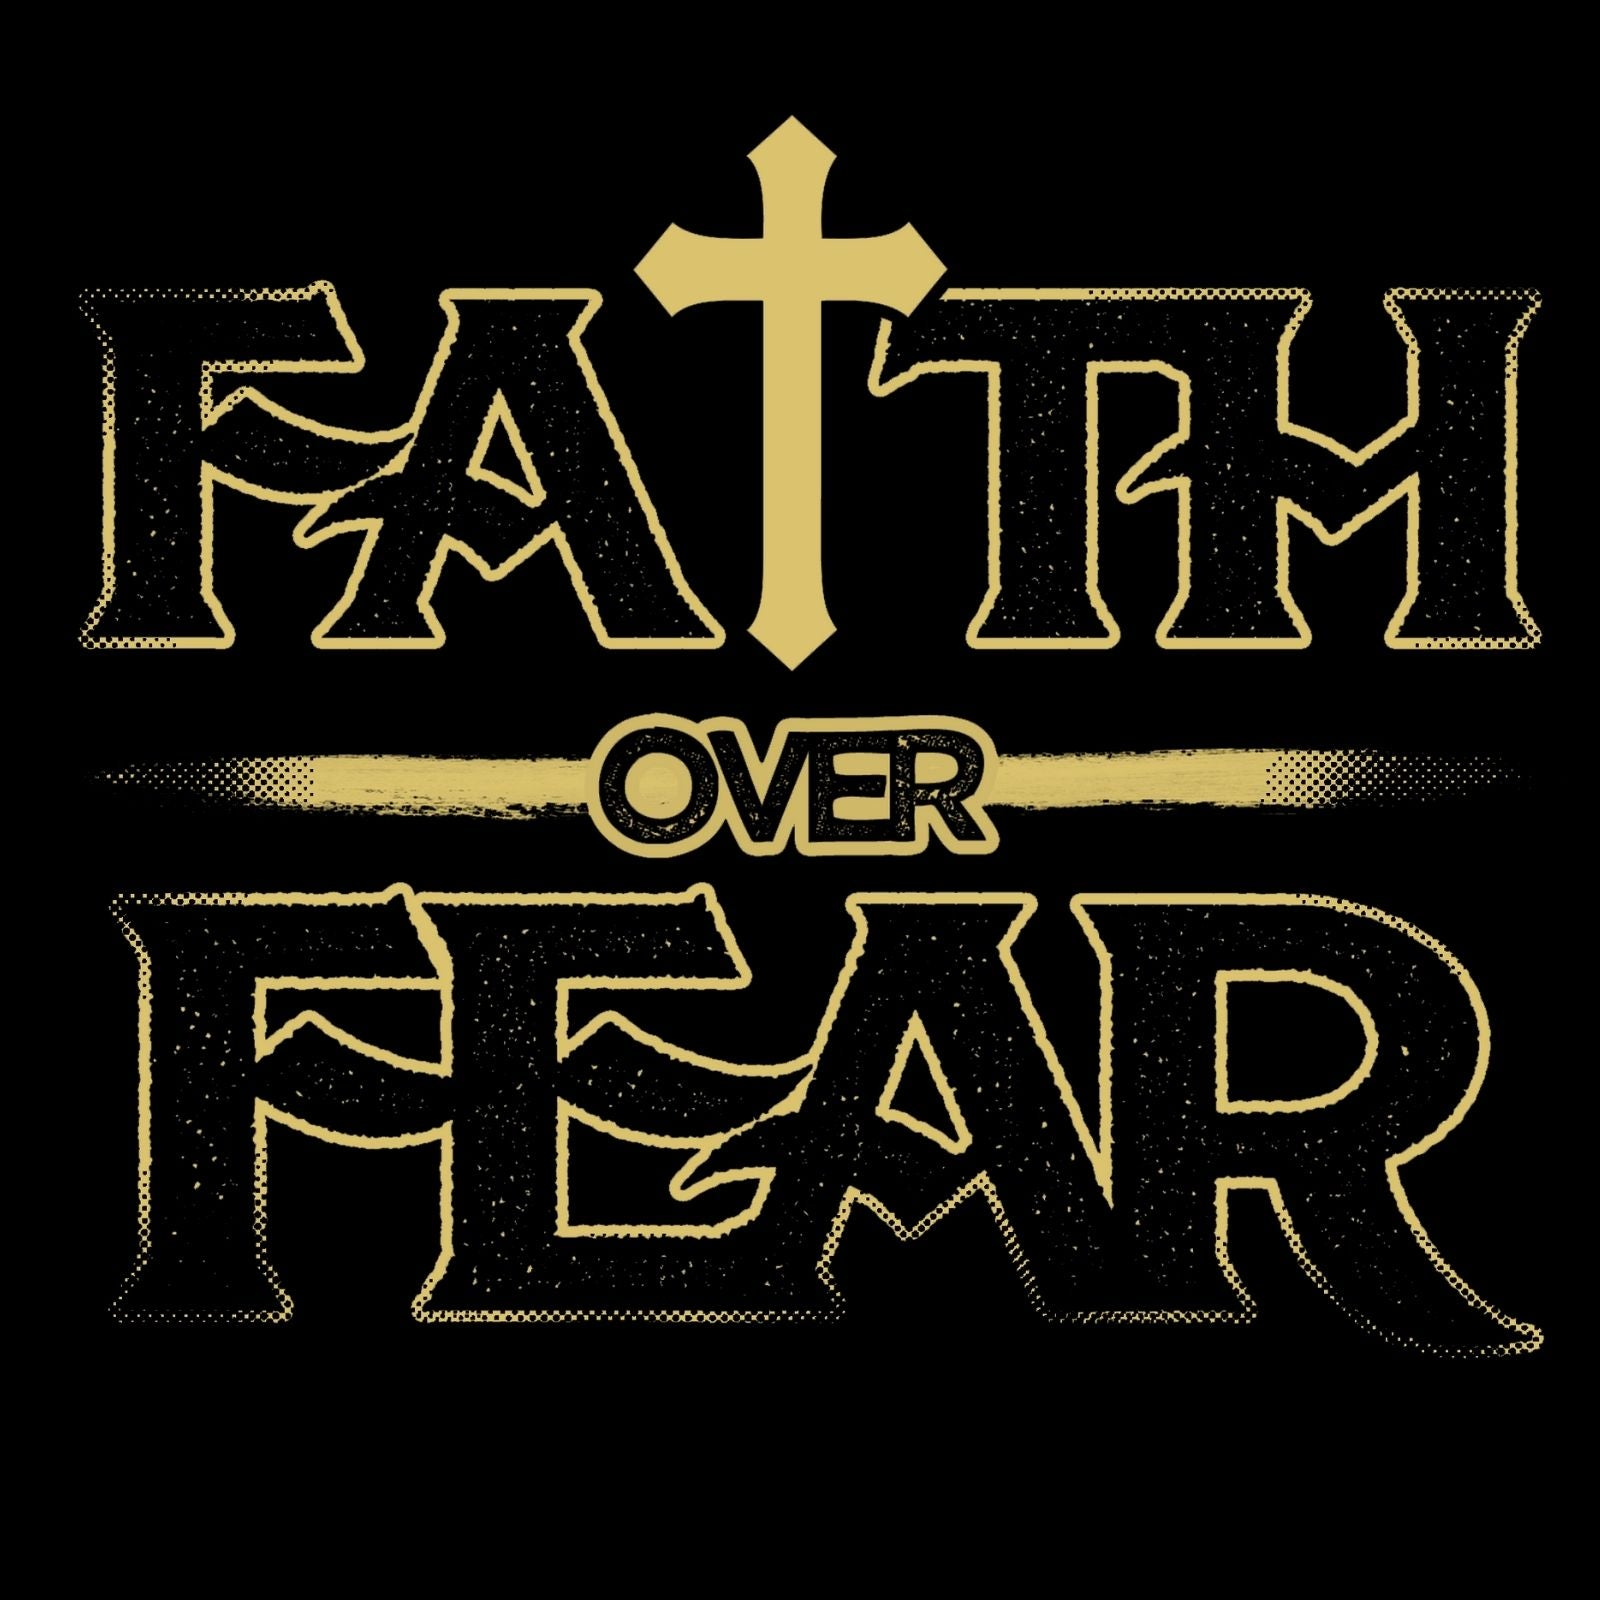 Faith Over Fear - Bastard Graphics